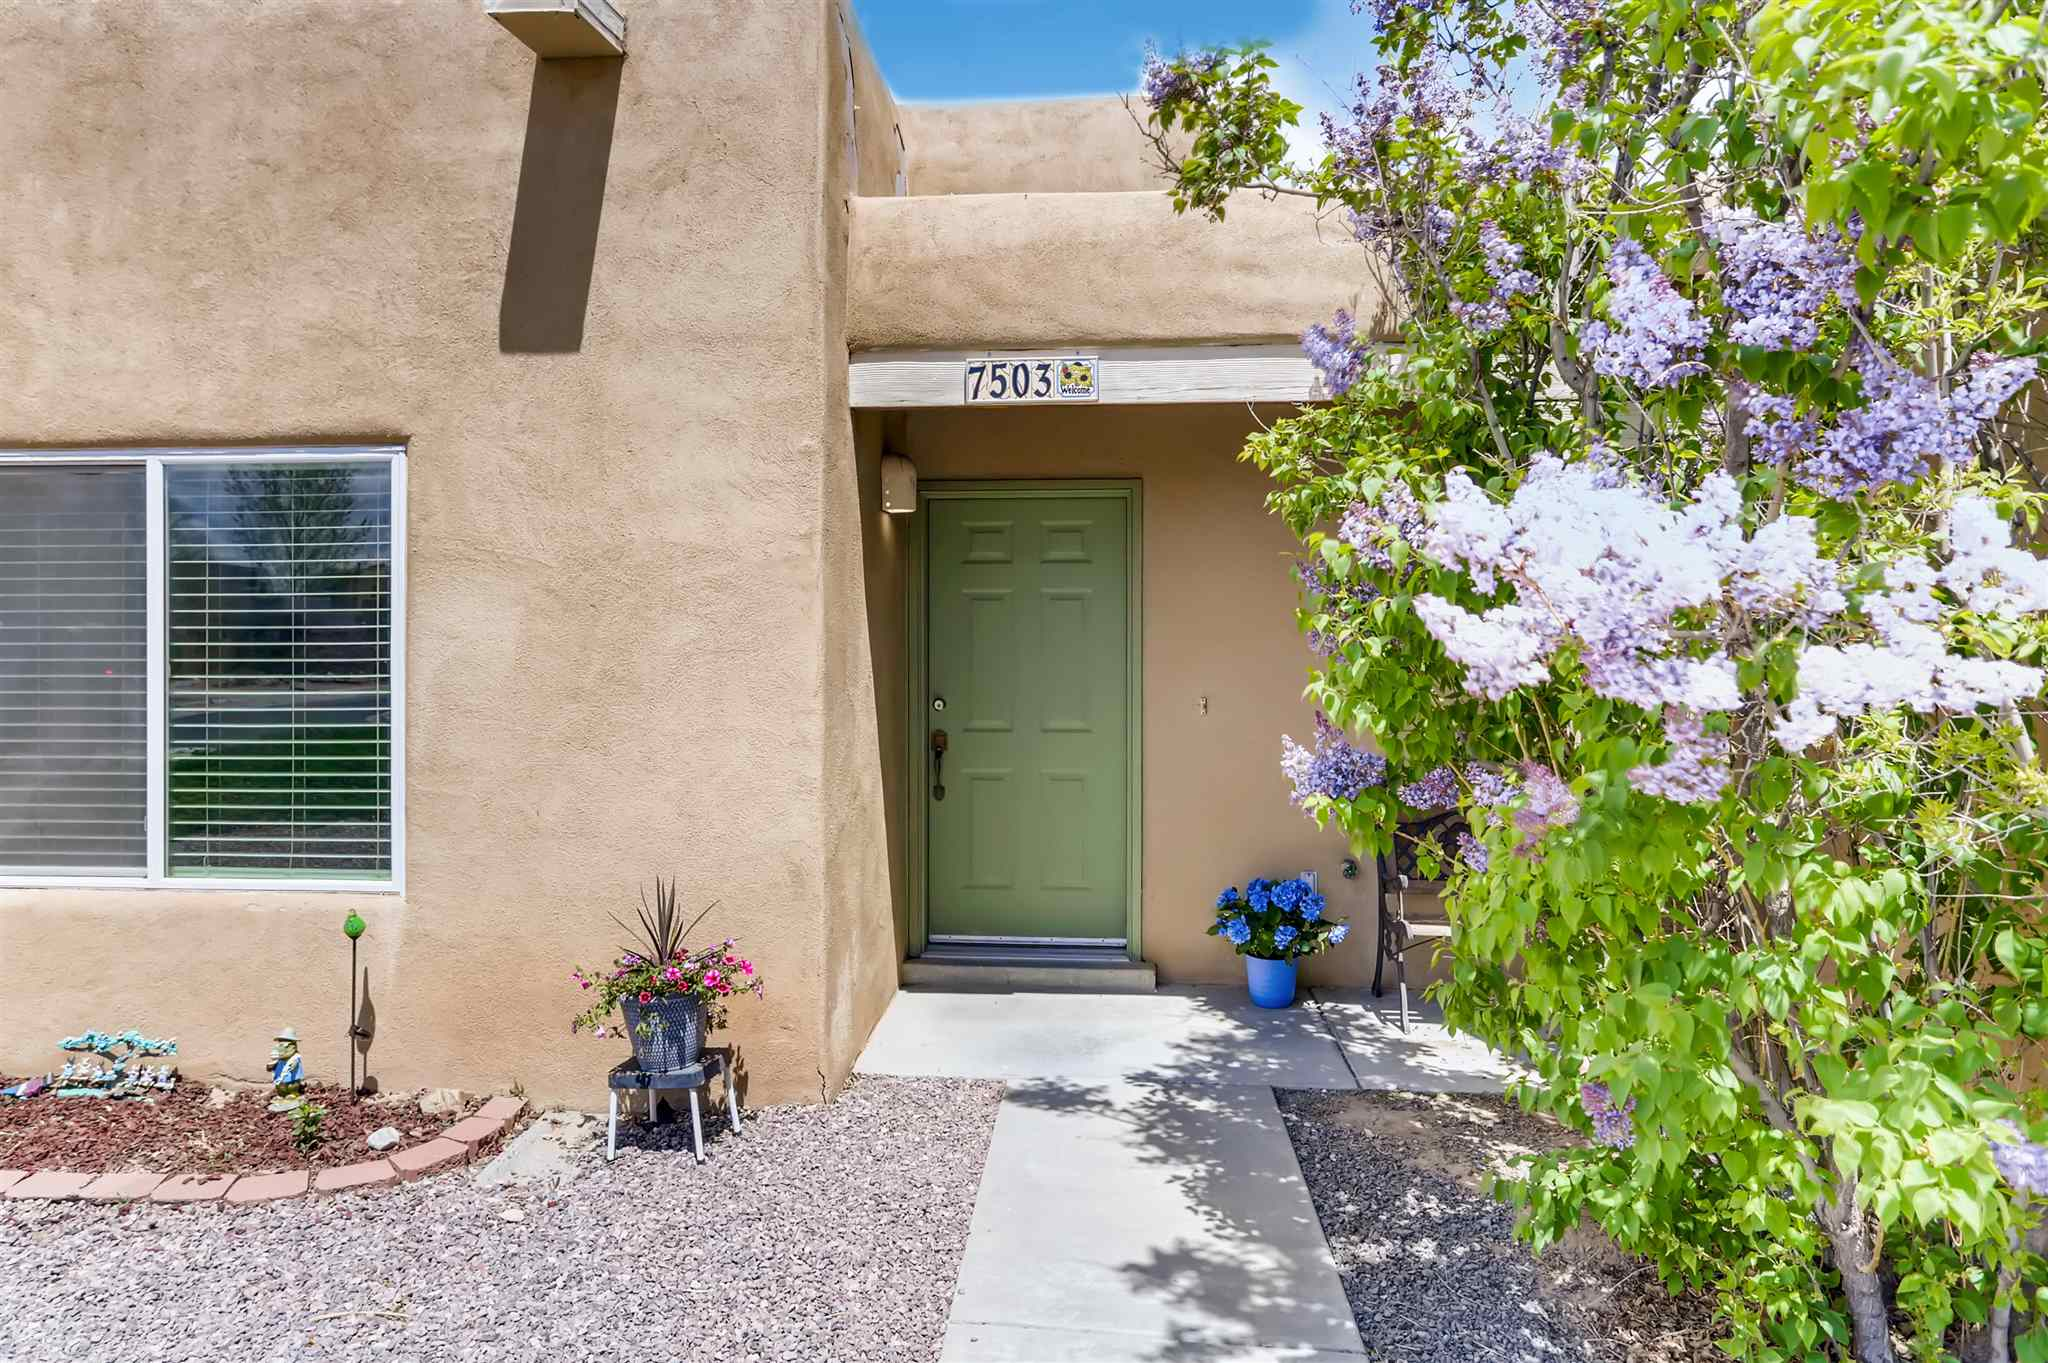 A sweet single level home in the gated community of Vista Primera which features  spacious front and back yards with mature healthy lilac and rose bushes, plenty of natural light, new paint, a gas fireplace, a 2 year roof warranty and Pella windows that were installed in 2015. This property is close to 599 for easy access to downtown Santa Fe, Los Alamos or Albuquerque.